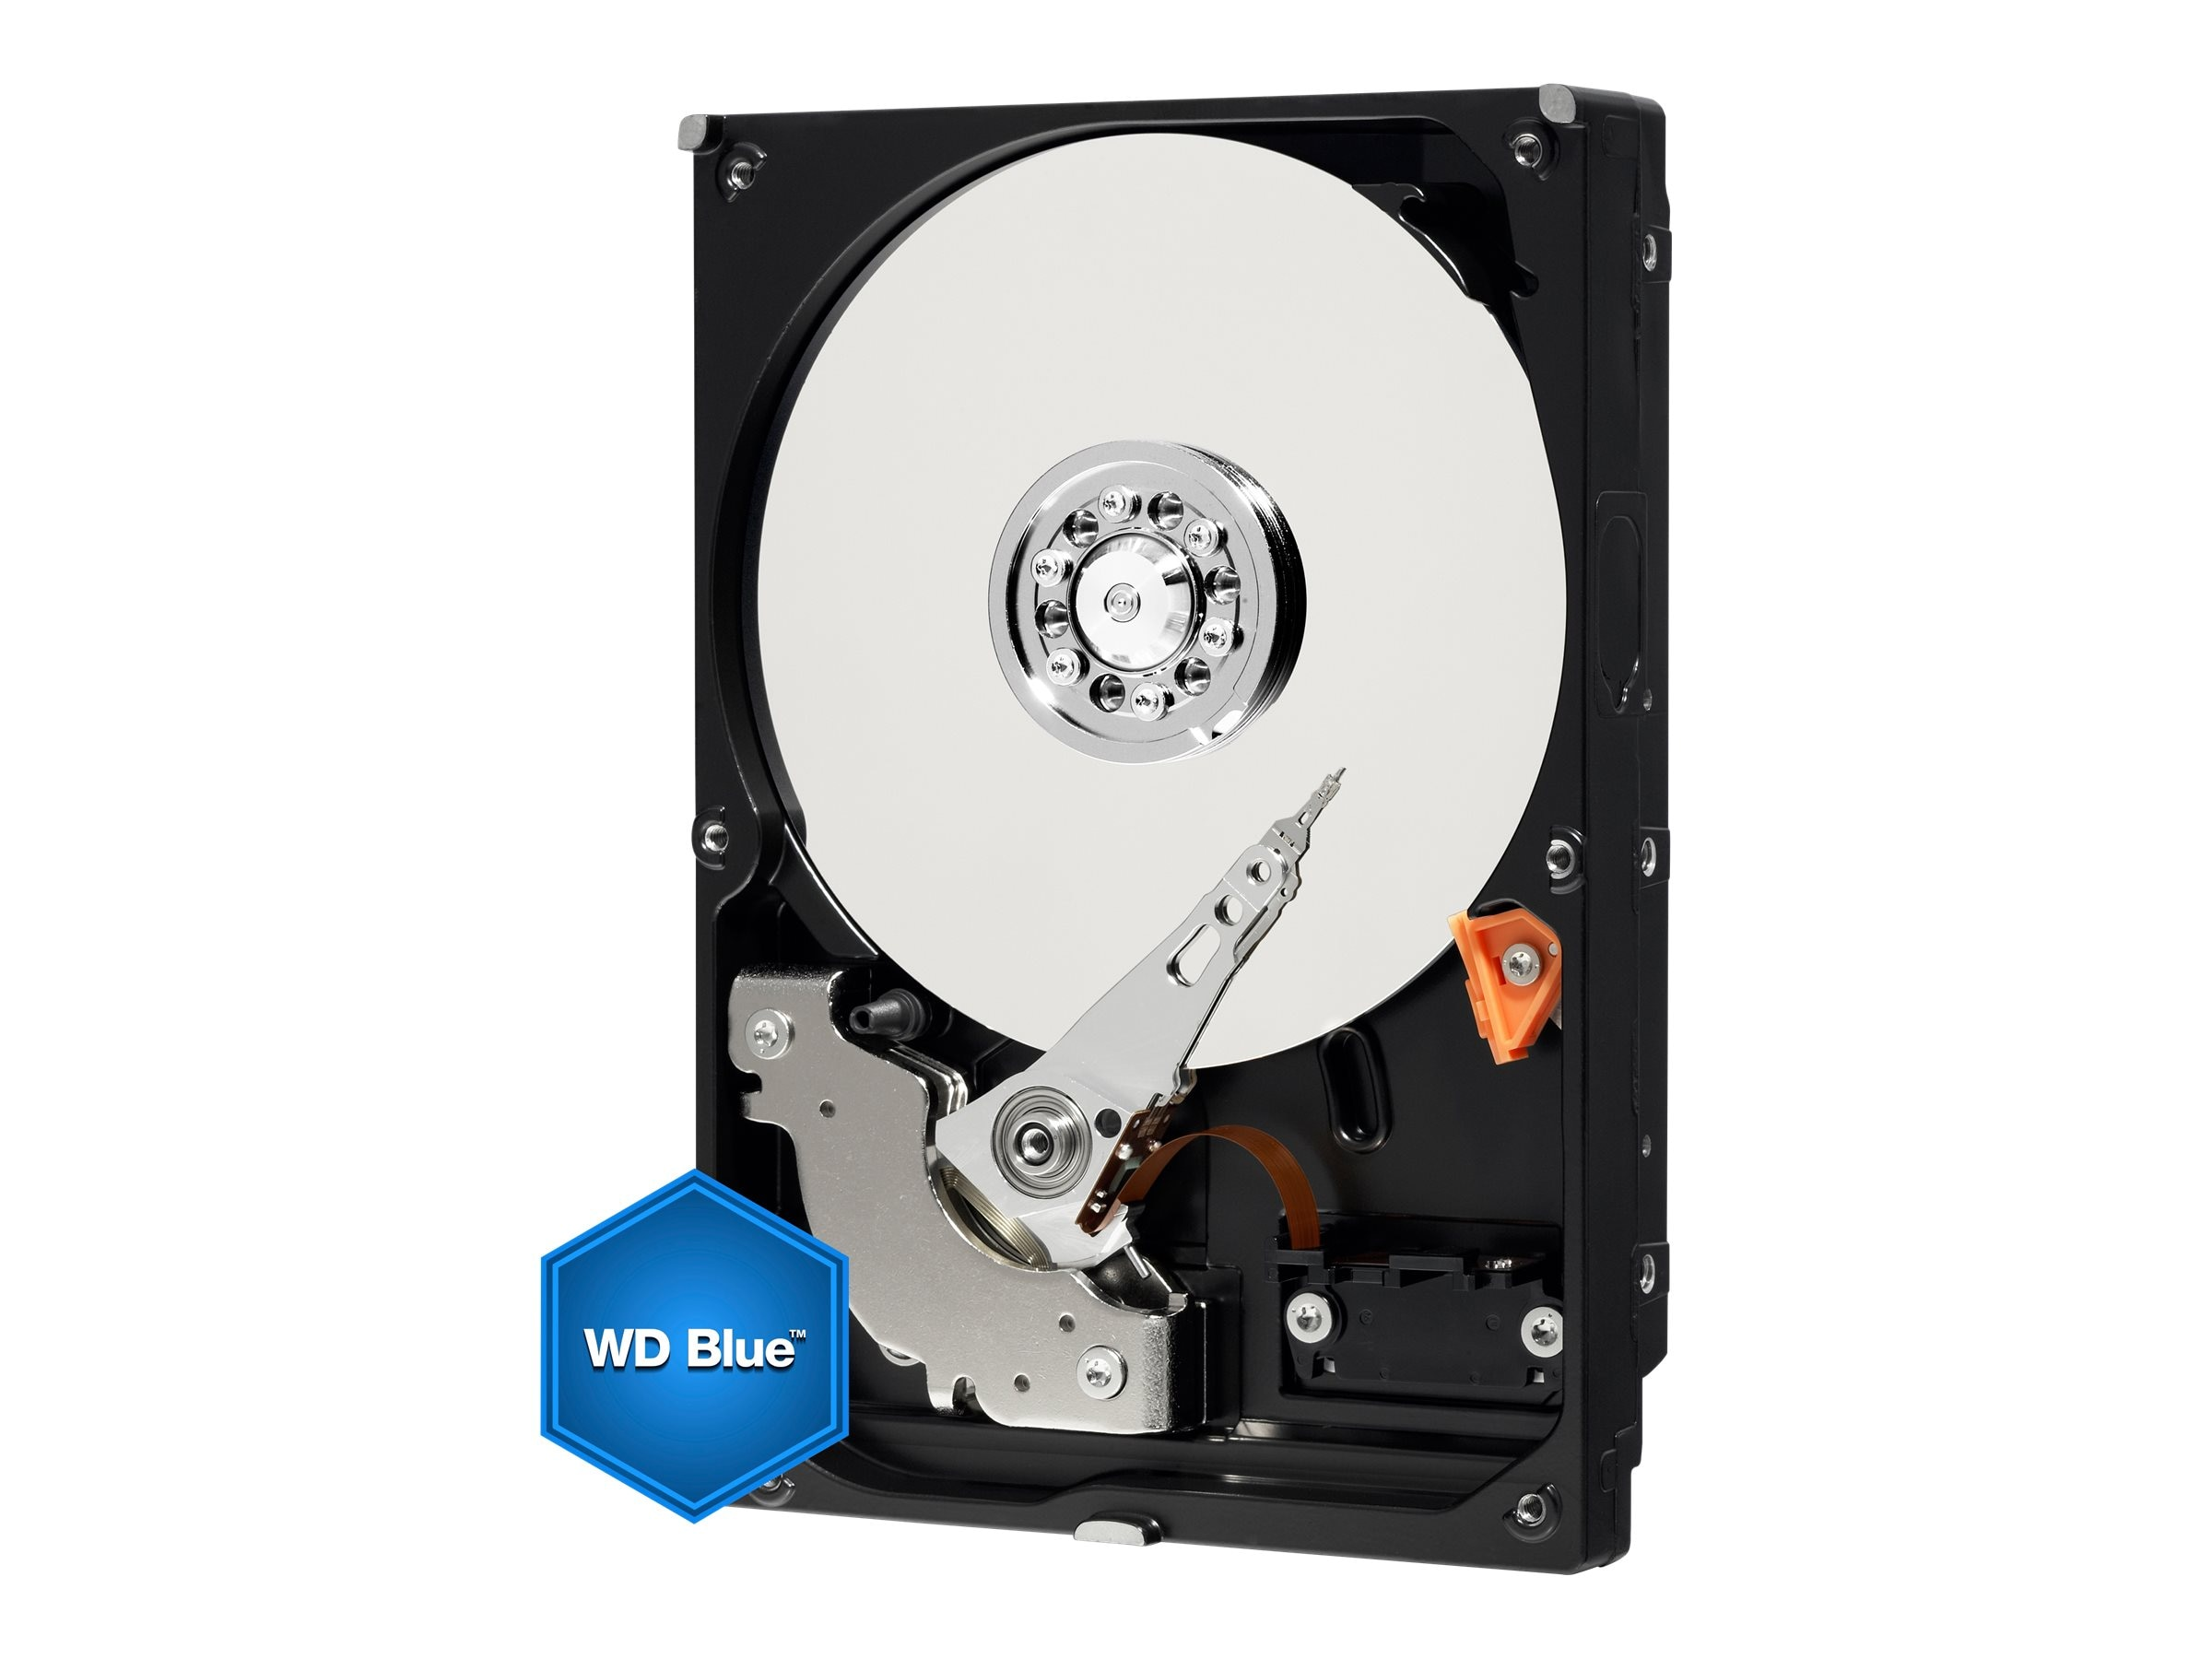 WD 500GB WD Blue SATA 6Gb s 7.2K RPM 3.5 Internal Hard Drive - 32MB Cache, WD5000AZLX